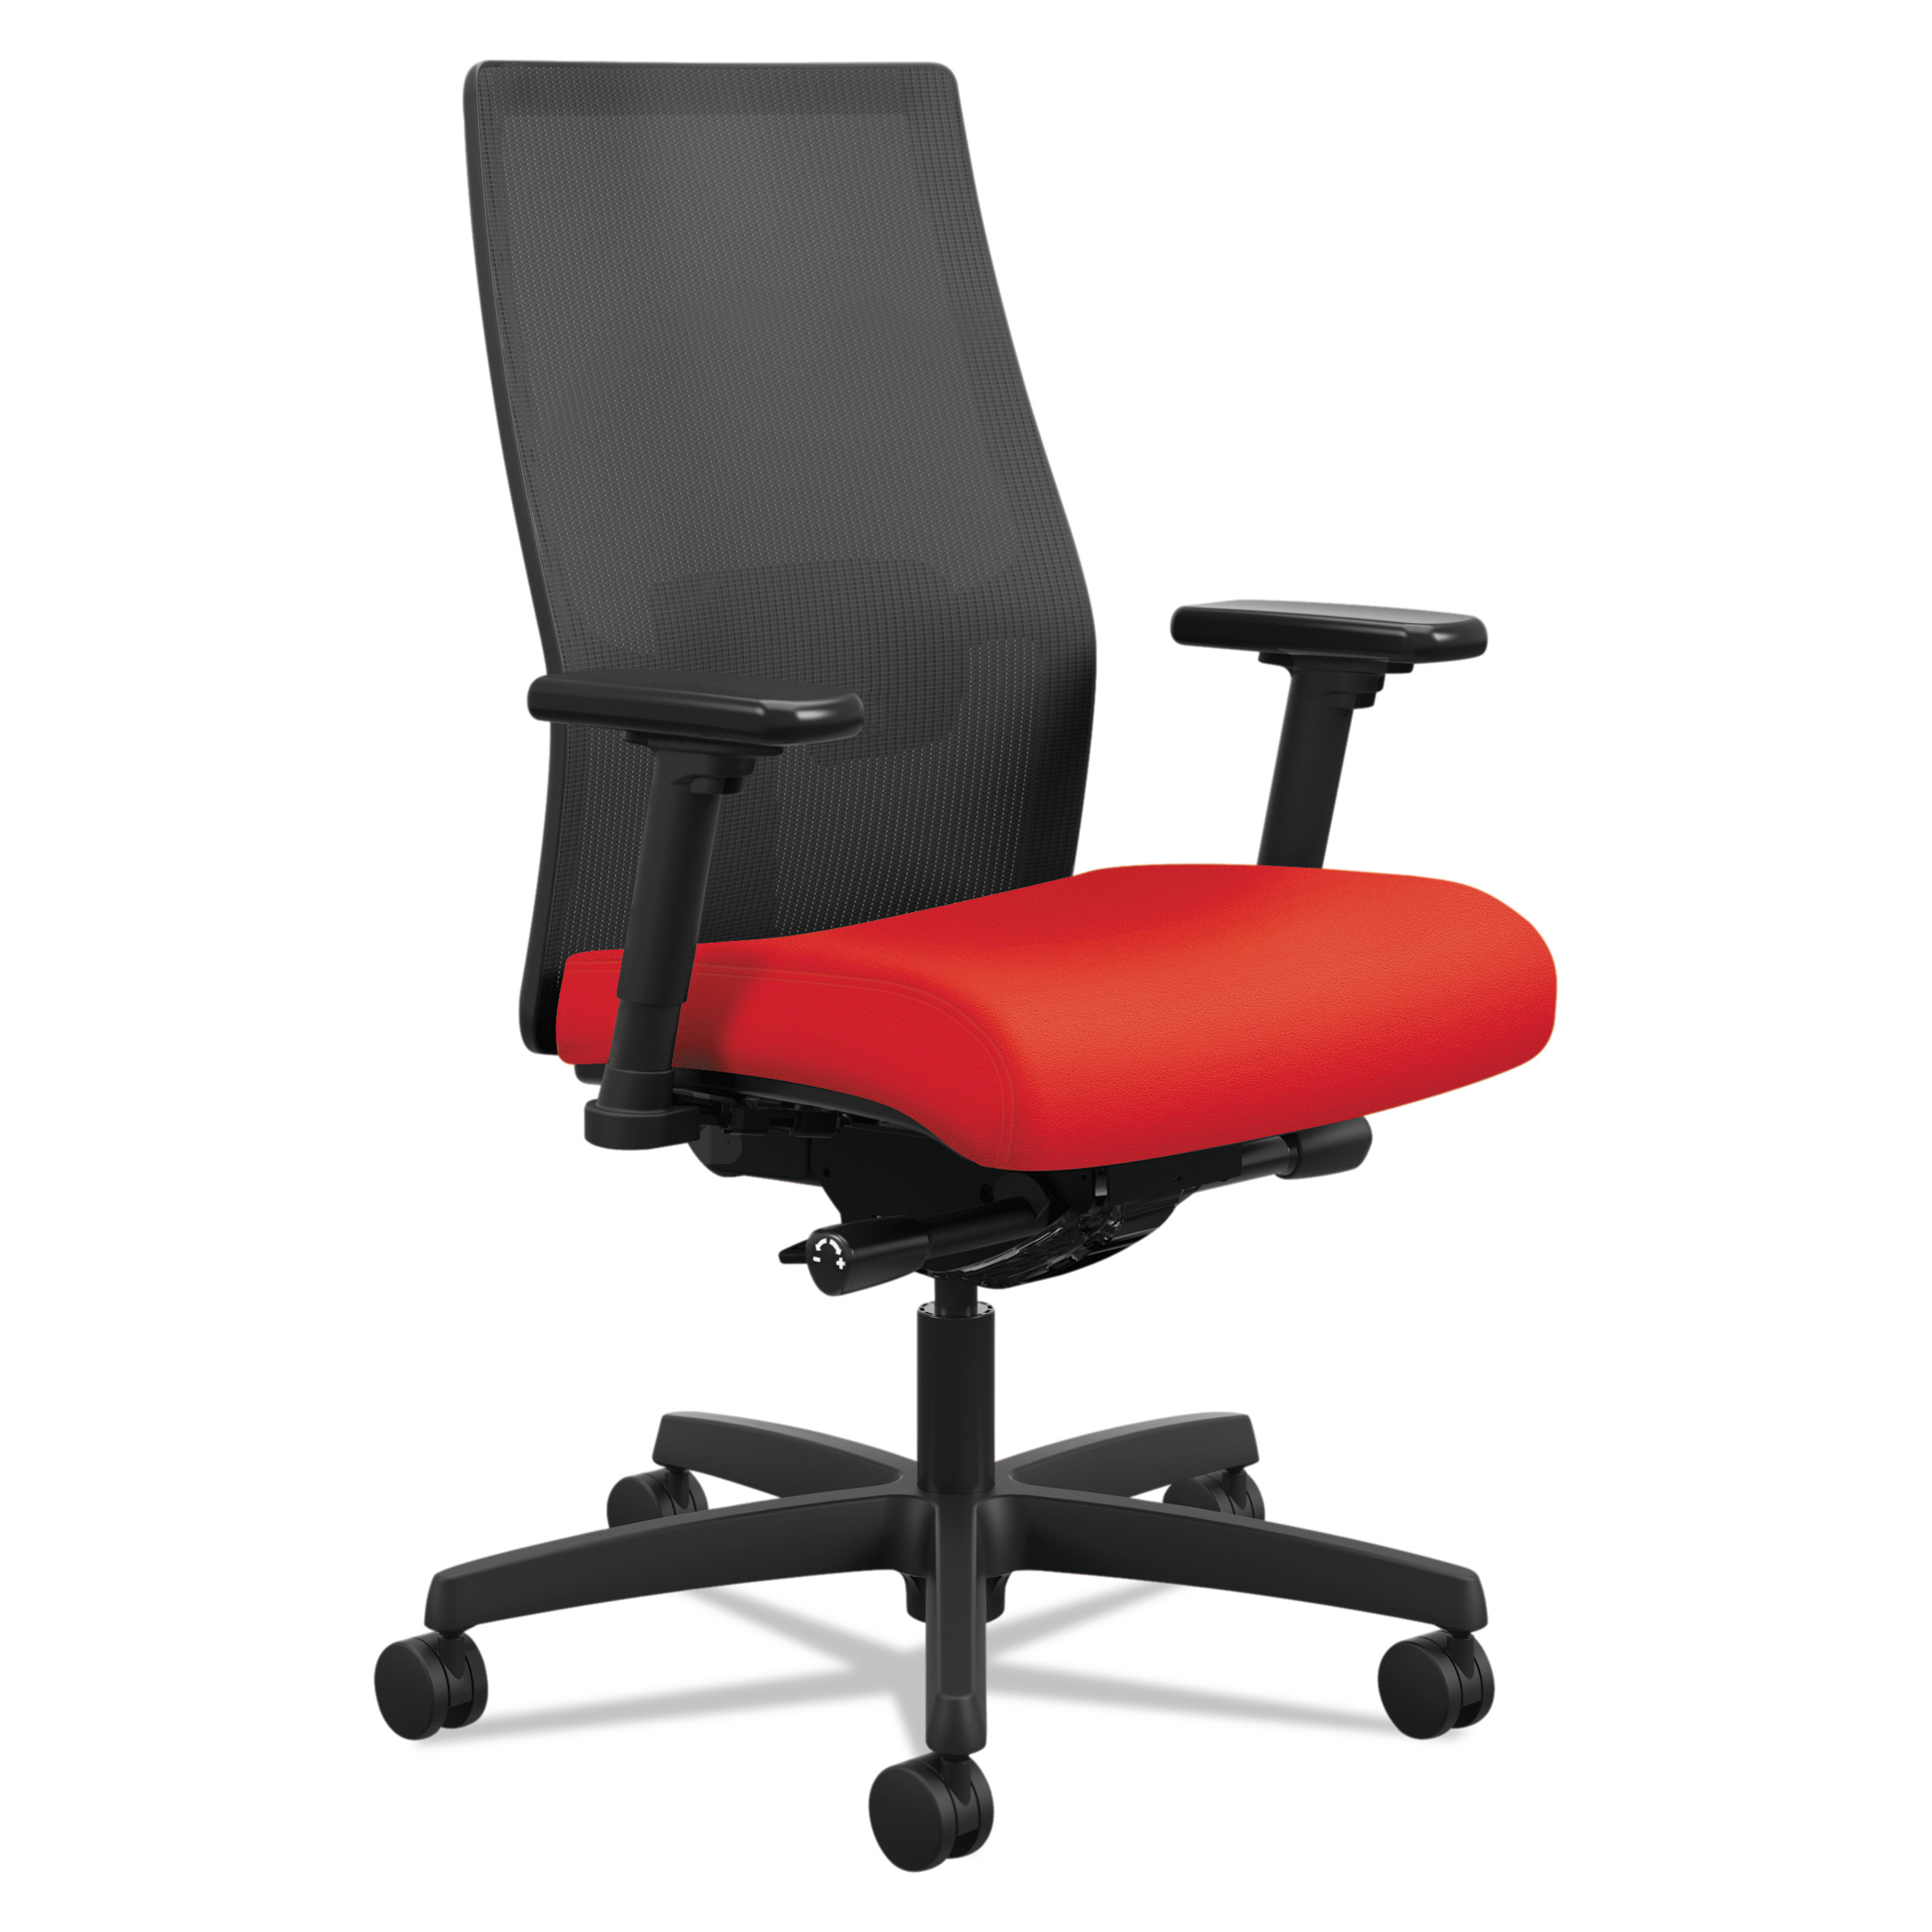 Ordinaire HON Ignition 2.0 Ilira Stretch Mid Back Mesh Task Chair, Ruby Fabric  Upholstery   Walmart.com